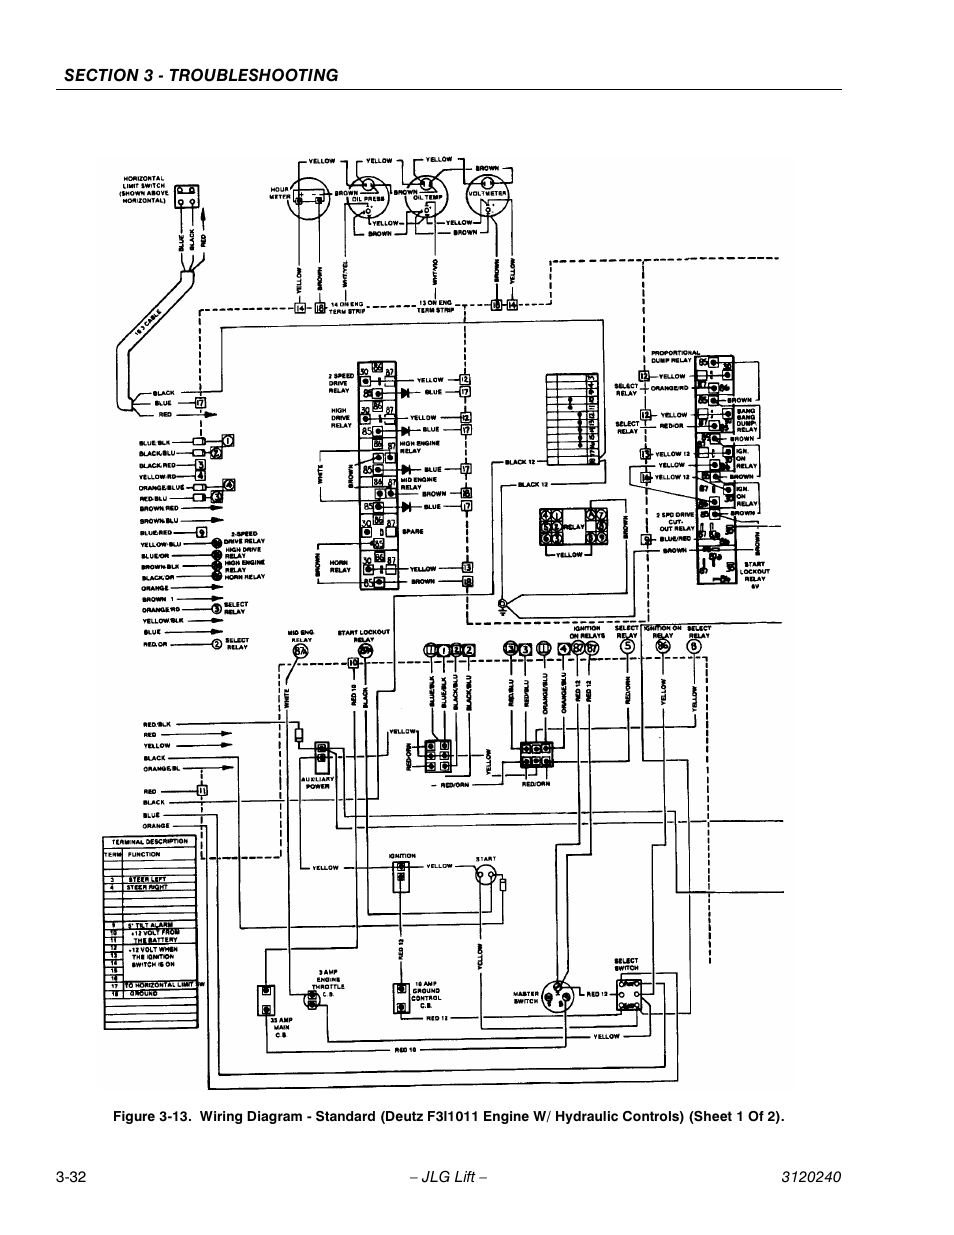 jlg wiring diagrams wiring diagram Lowrider Batteries Wiring 6 jlg wiring diagram wiring diagram postjlg wiring diagram